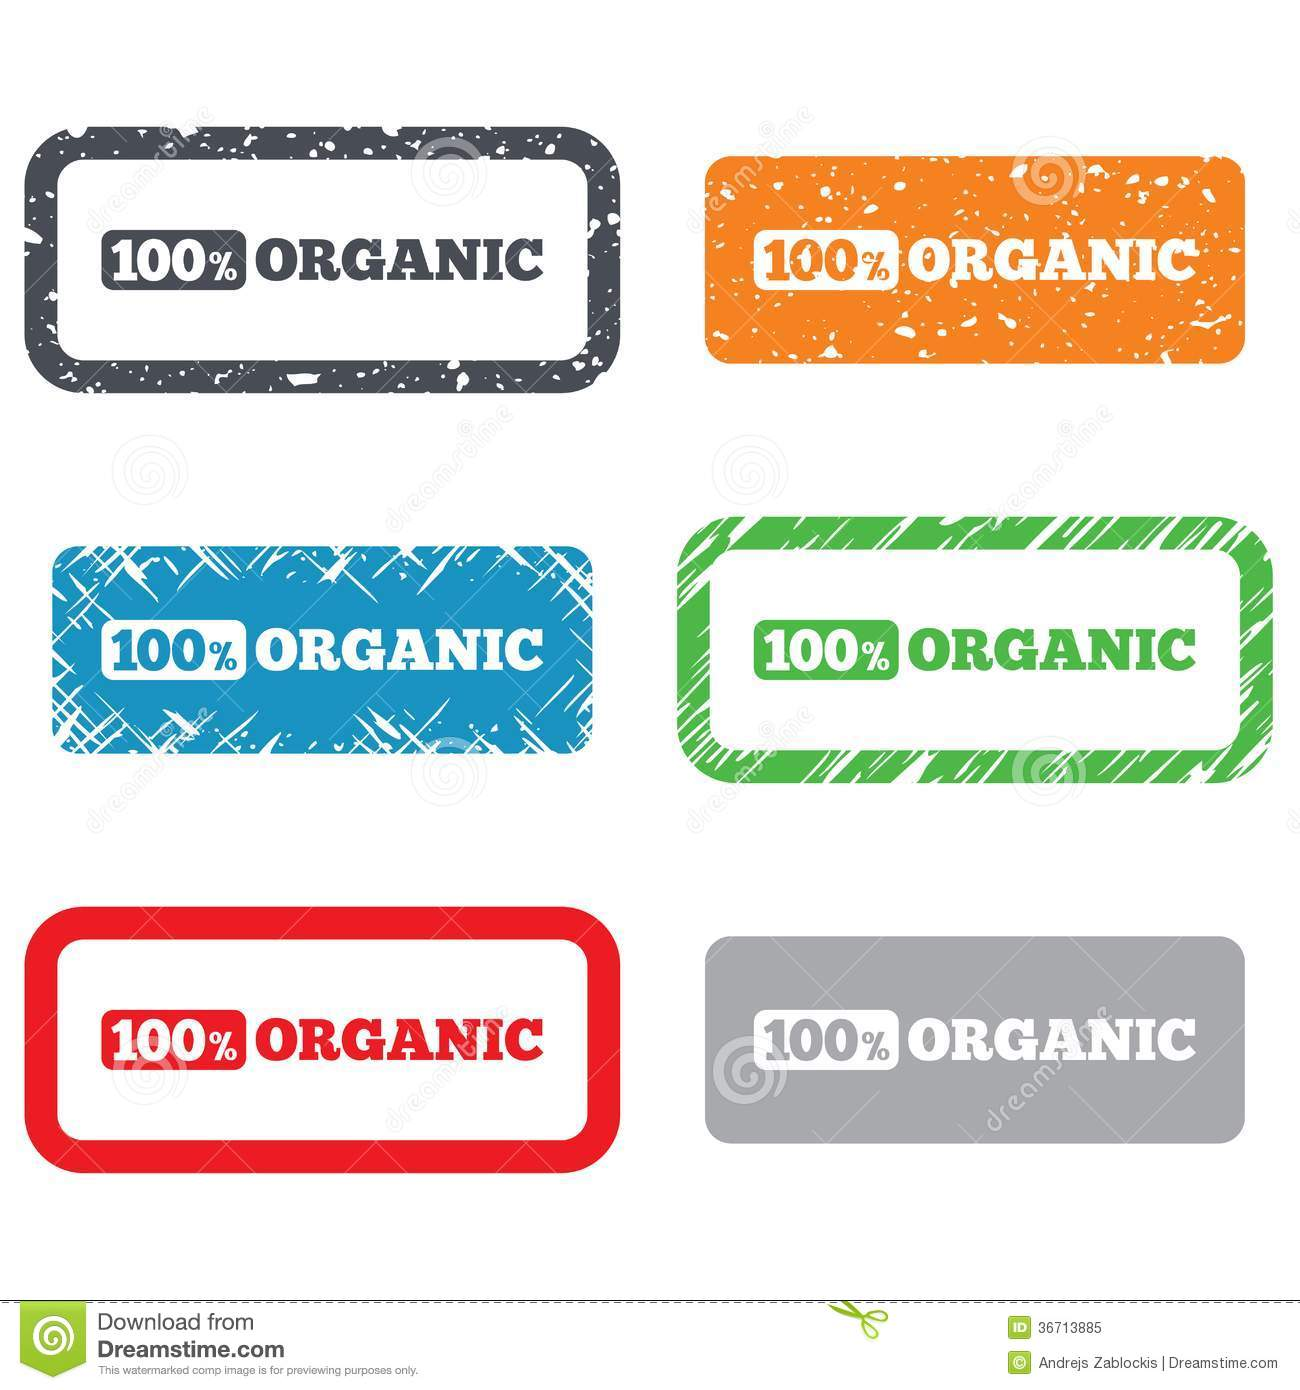 100 percent organic sign natural food symbol stock illustration 100 percent organic sign natural food symbol buycottarizona Image collections